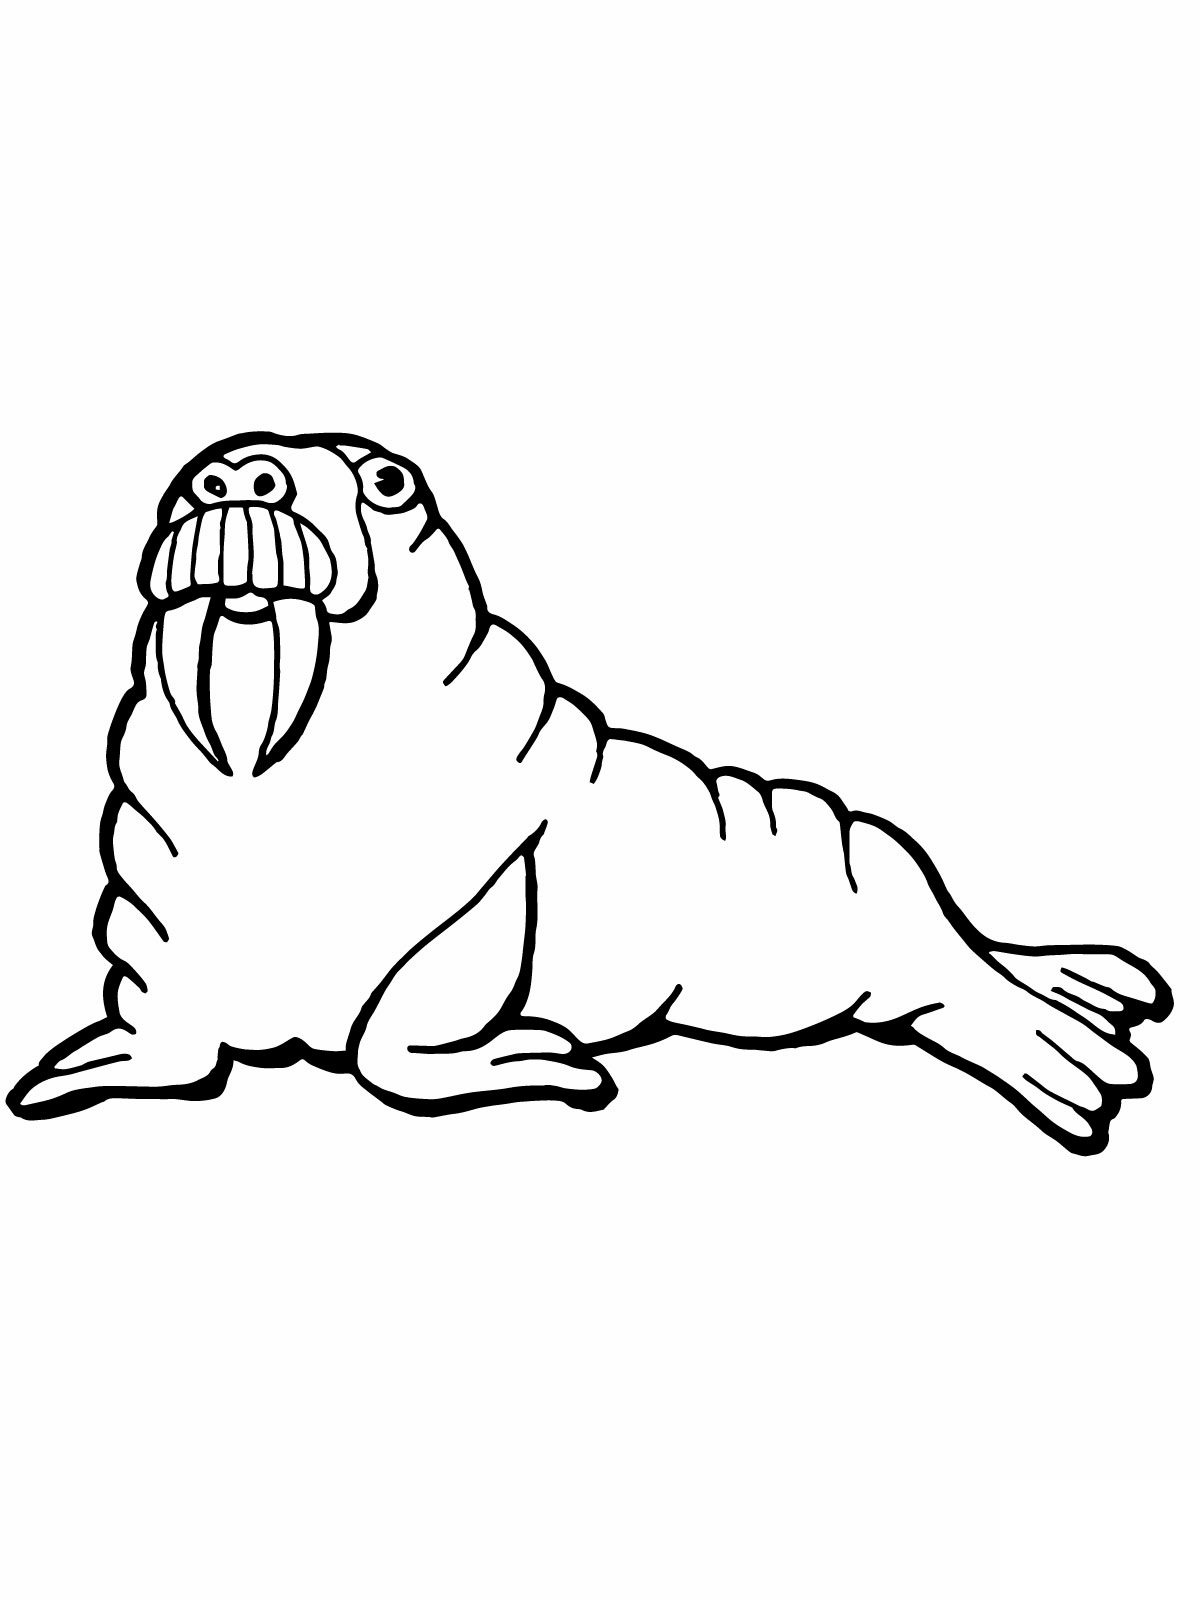 Free Printable Walrus Coloring